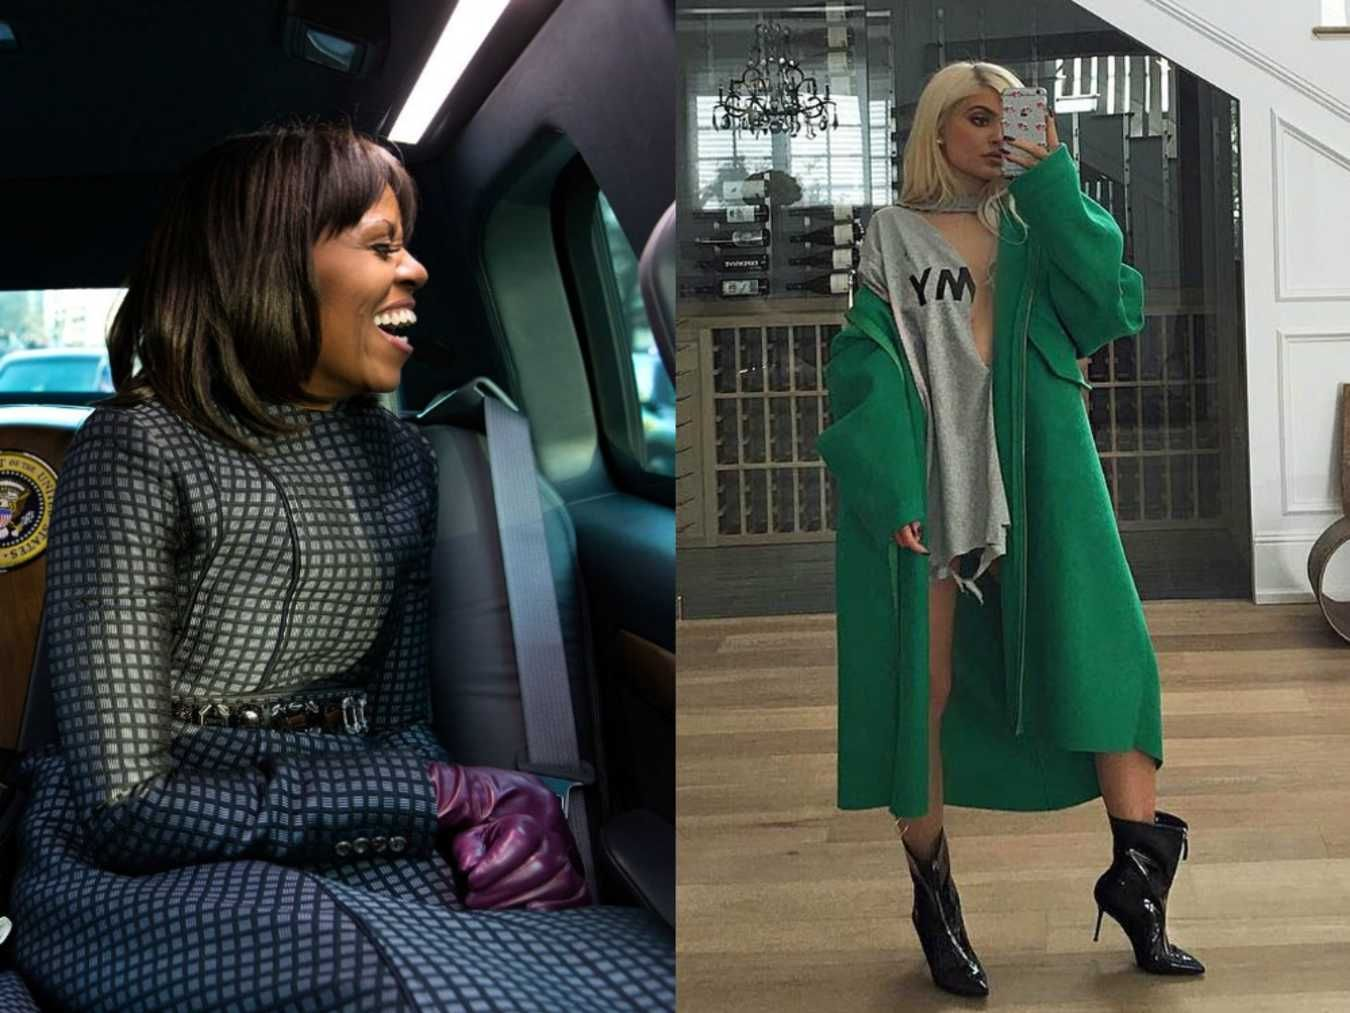 Weekly Crossover: Michelle Obama x Kylie Jenner. The fierce First Lady meets the sexy star in a holiday themed Weekly Crossover.